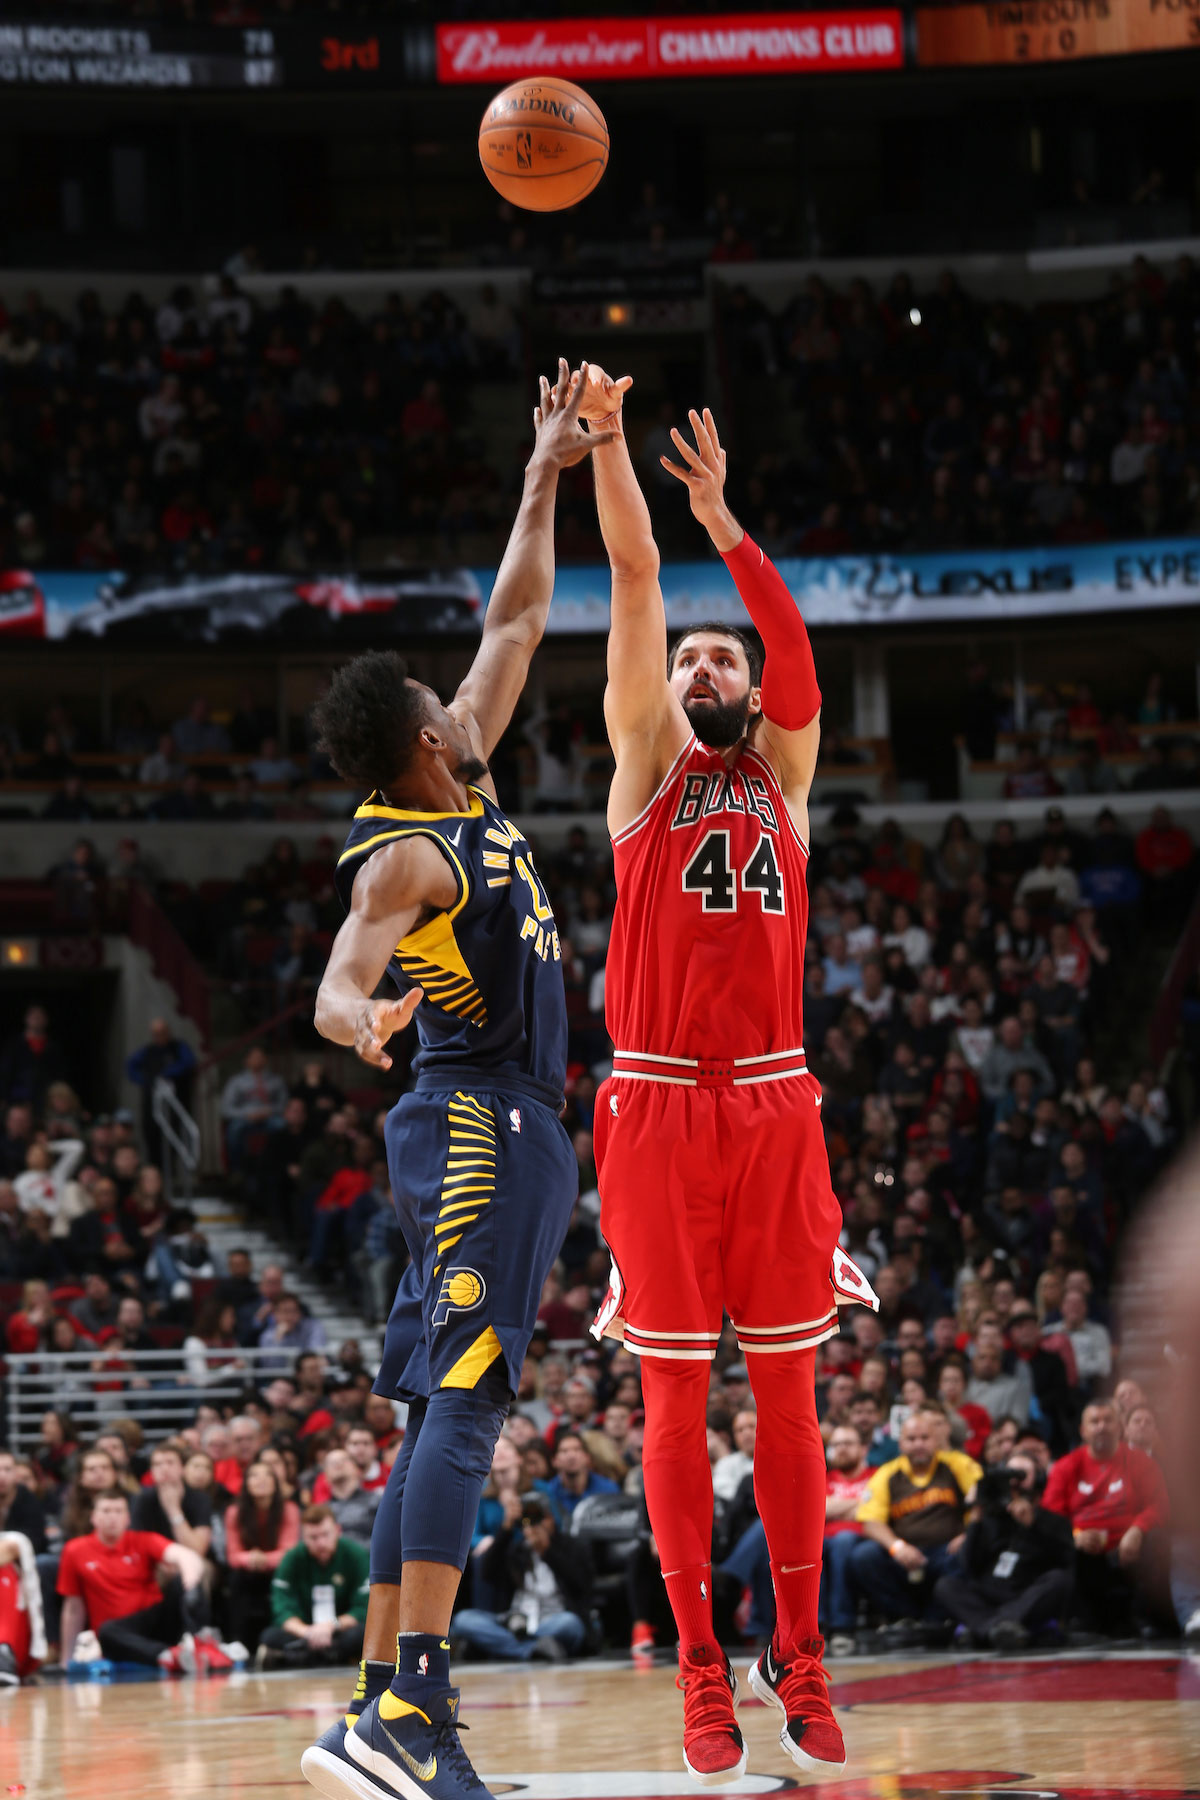 Nikola Mirotic #44 of the Chicago Bulls shoots the ball against the Indiana Pacers.